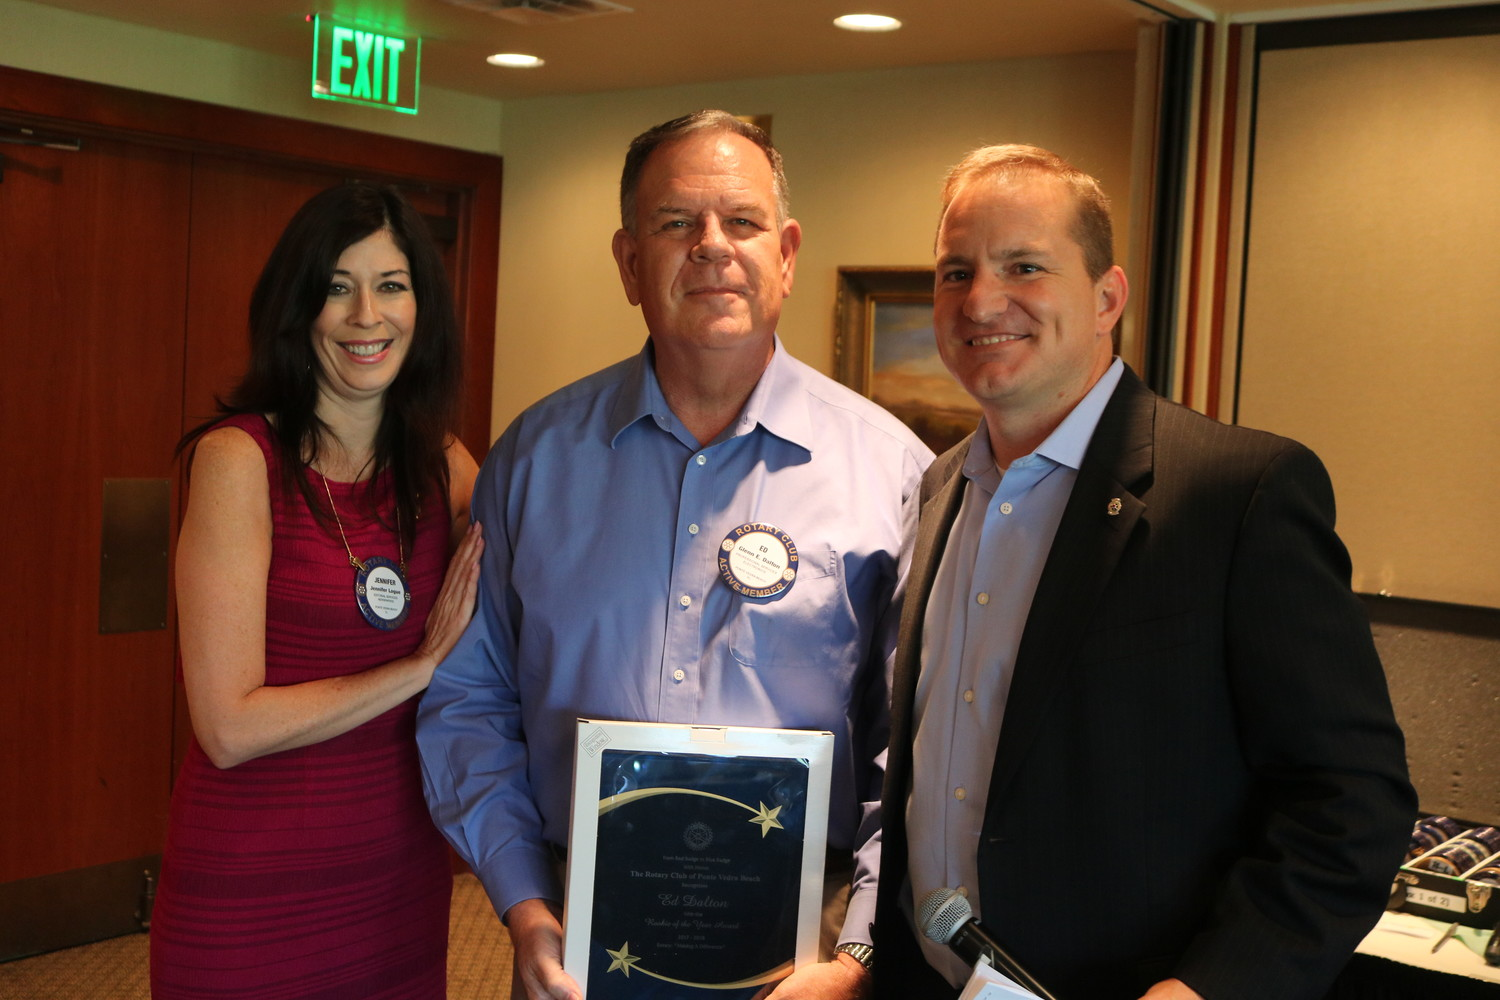 Ed Dalton (center) receives the Rookie of the Year Award from Jennifer Logue (left) and Billy Wagner (right).